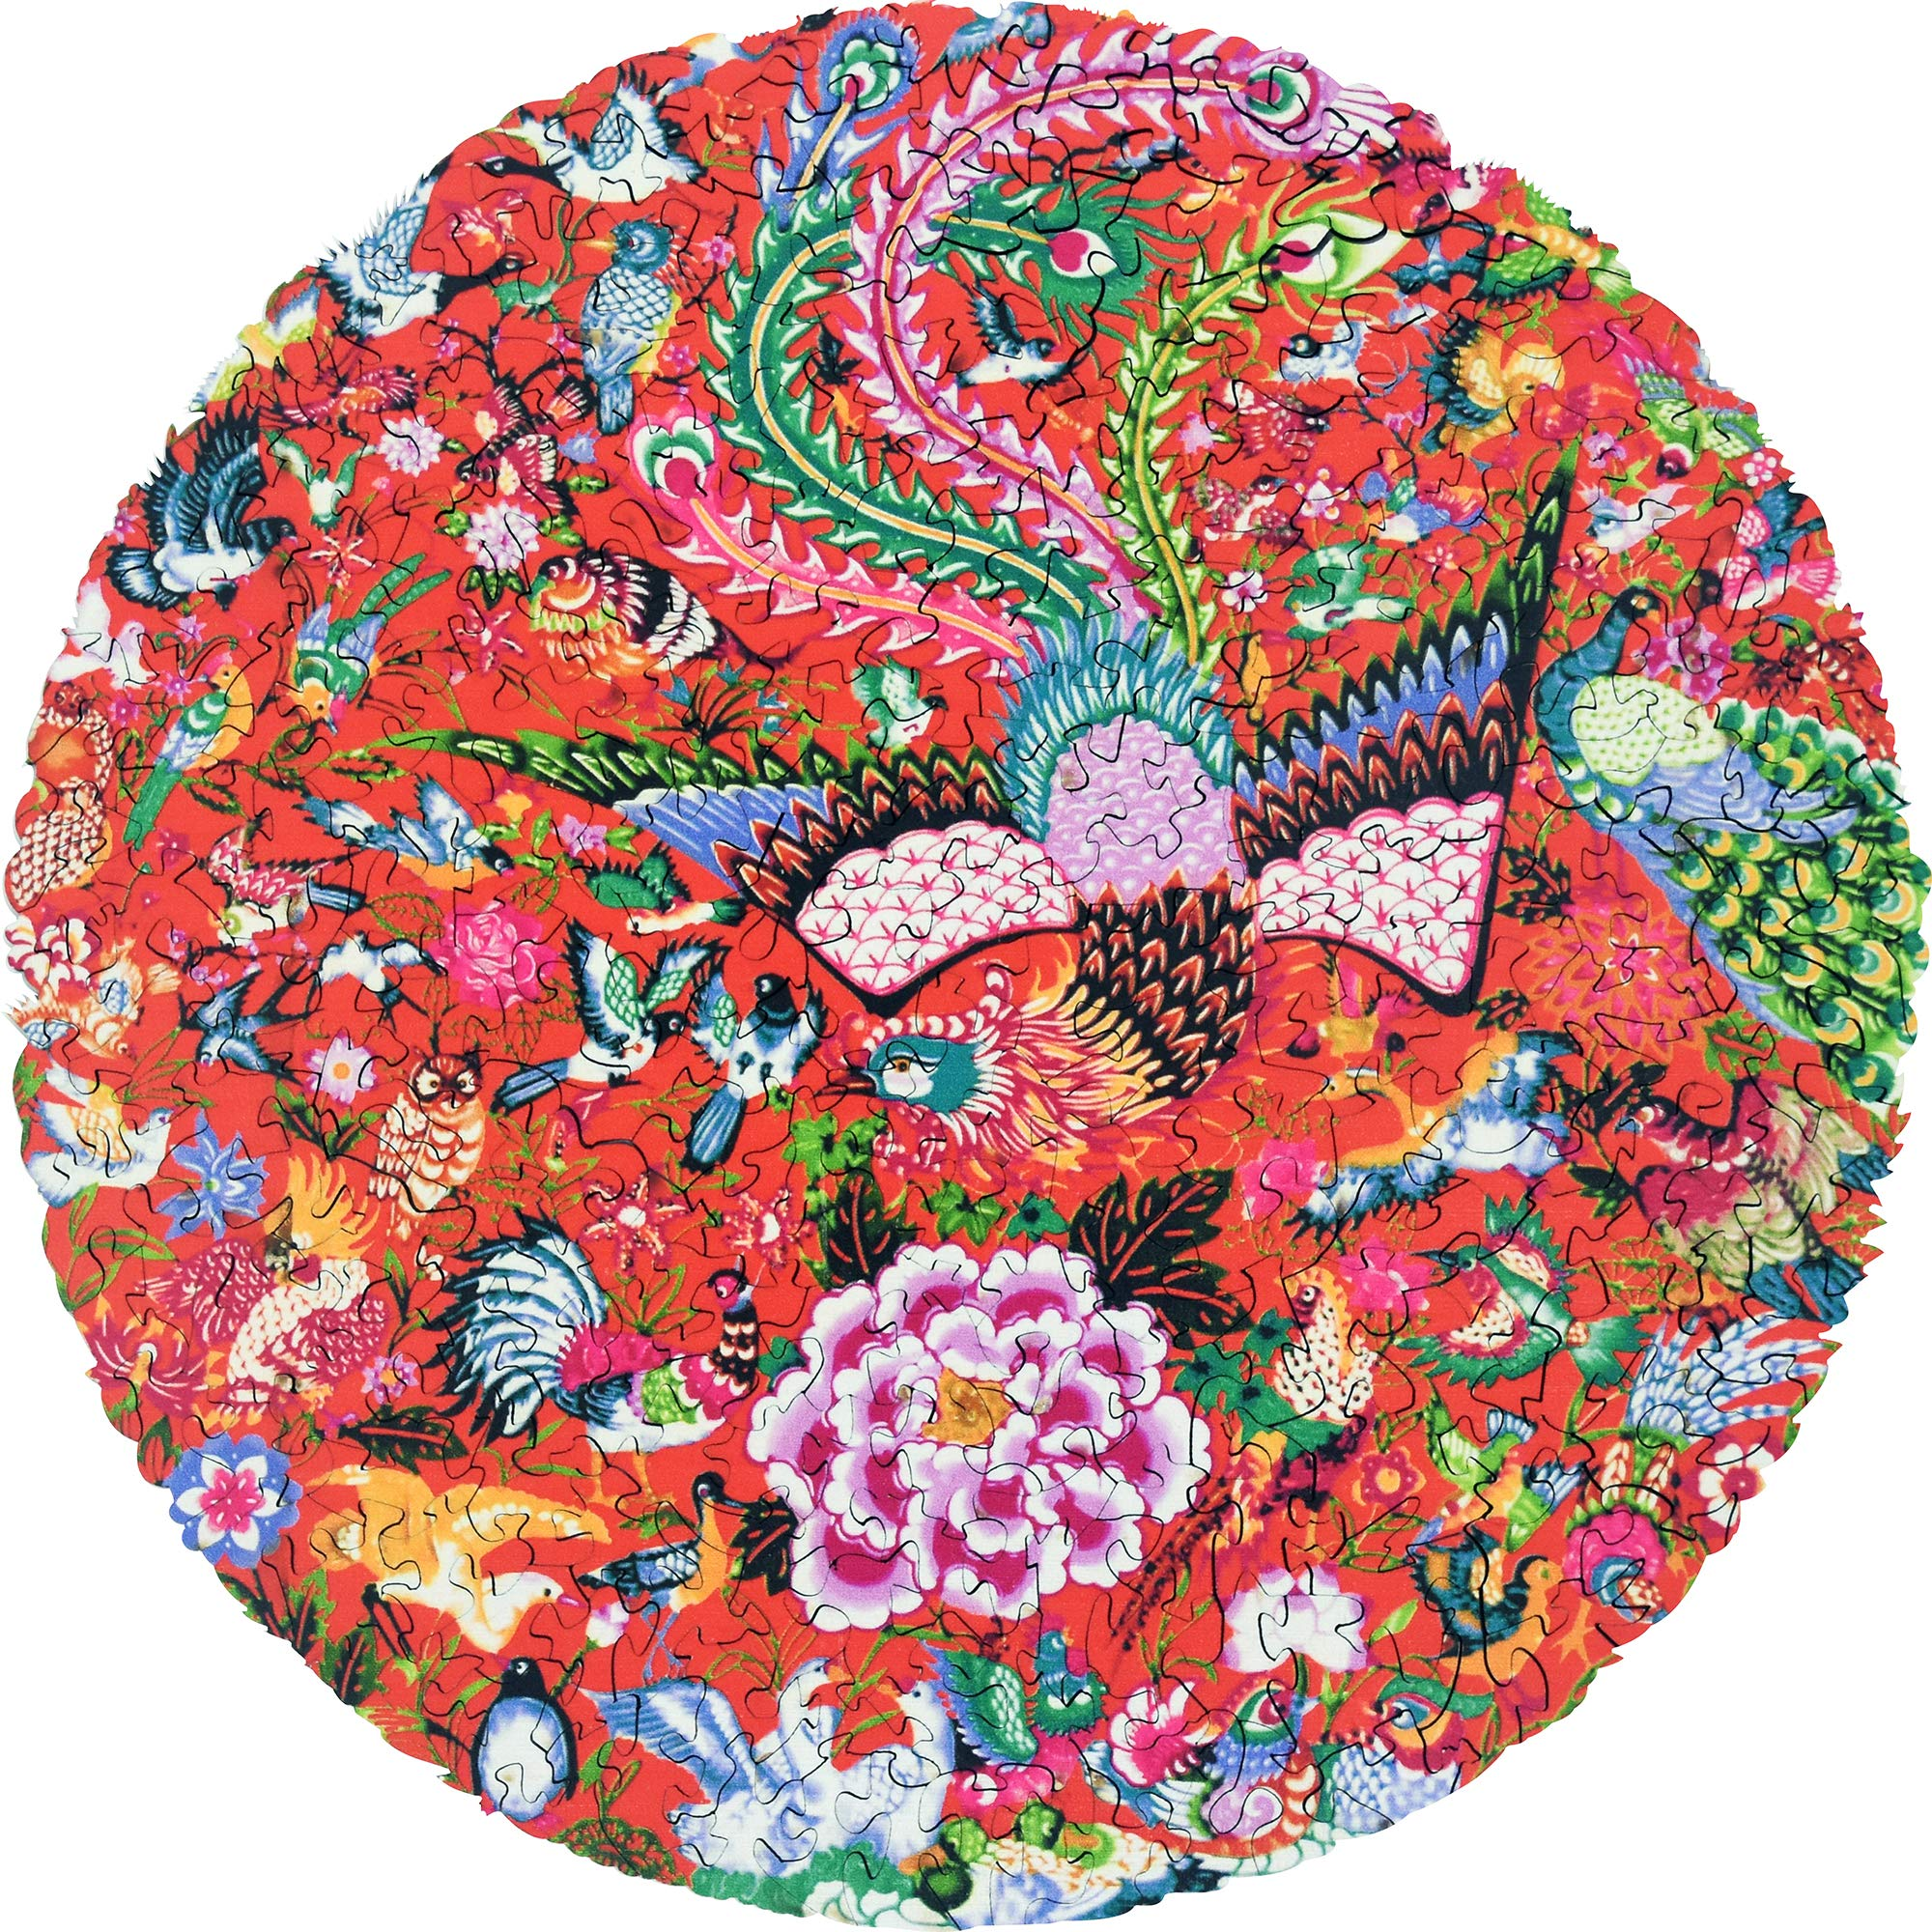 Hartmaze Wooden Jigsaw Puzzles-Hundred Birds Paying Homage to The Phoenix 253 Truly Unique Piece Round Shape Best Choice for Adults and 10 Ages up Kids by hartmaze